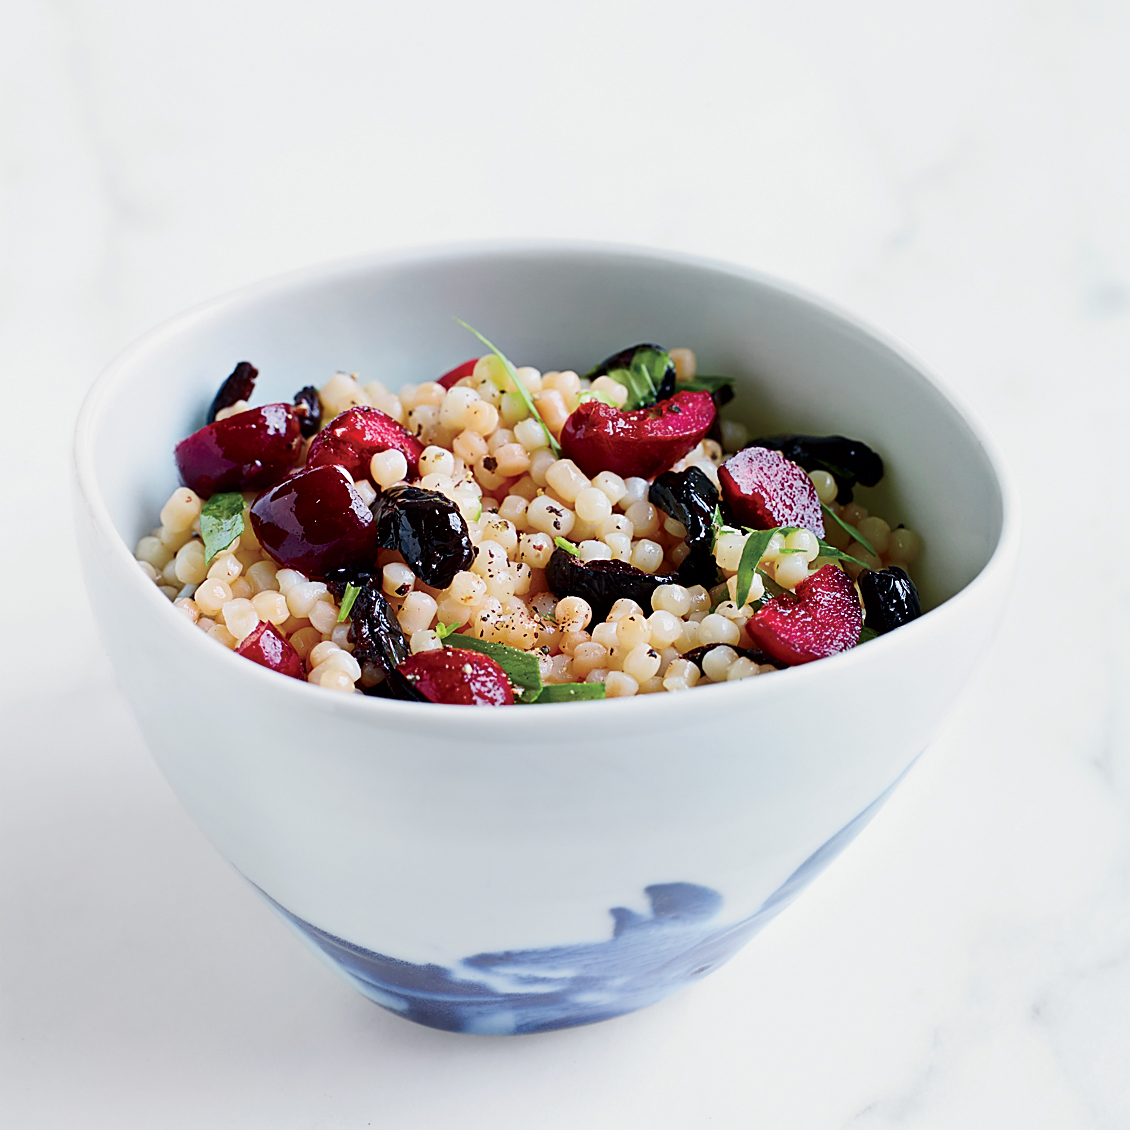 201406-r-cherry-couscous-salad.jpg